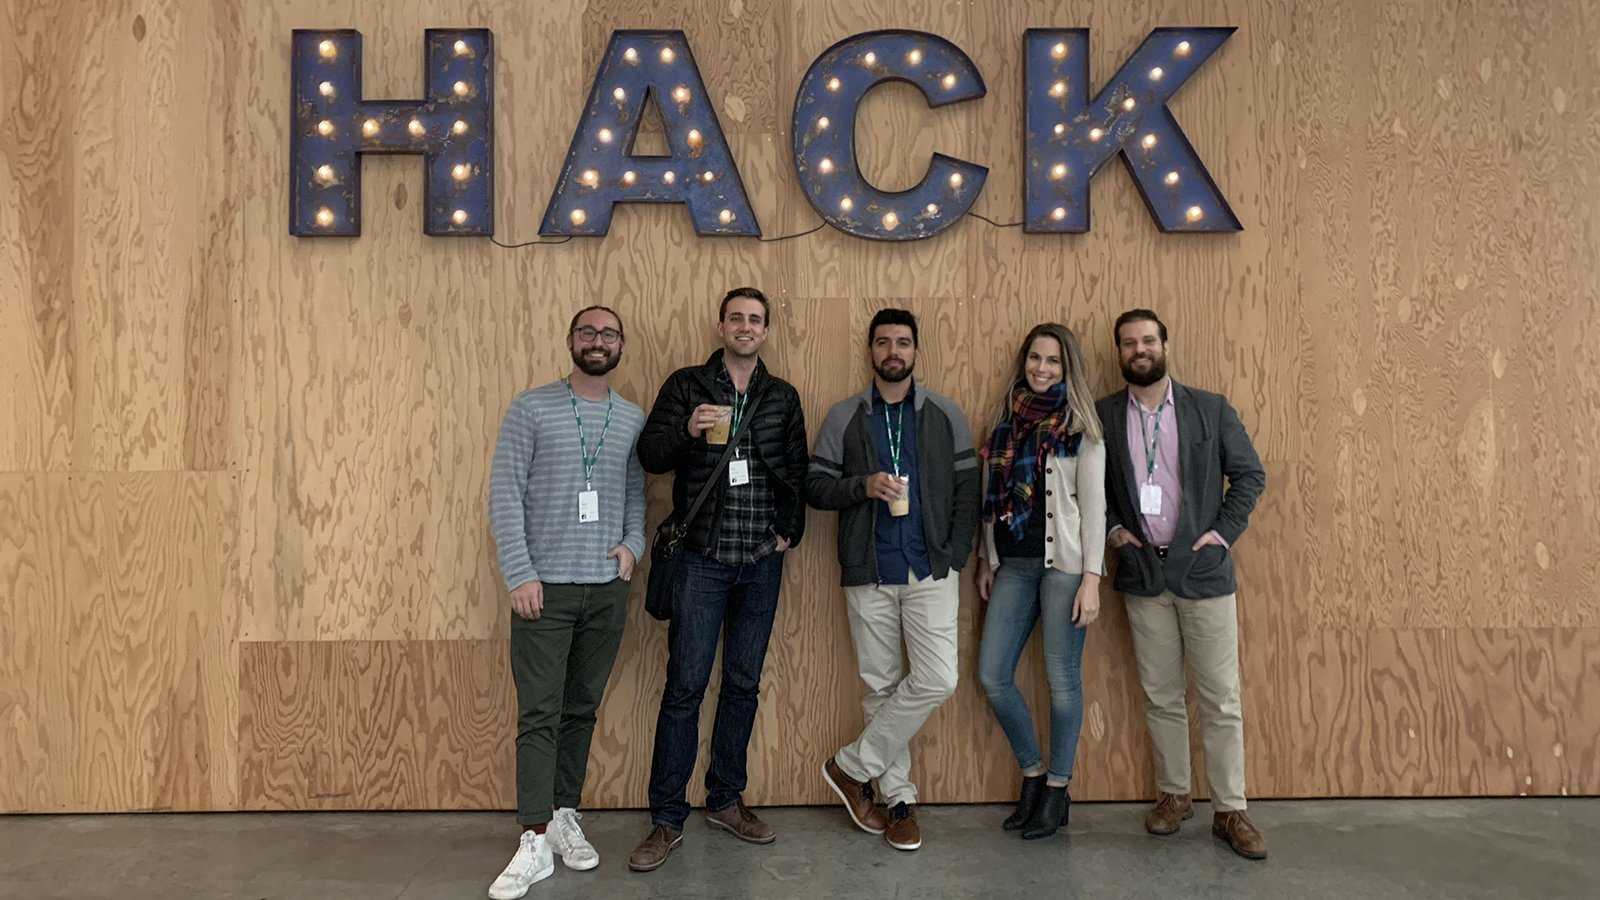 Group standing in front of HACK sign